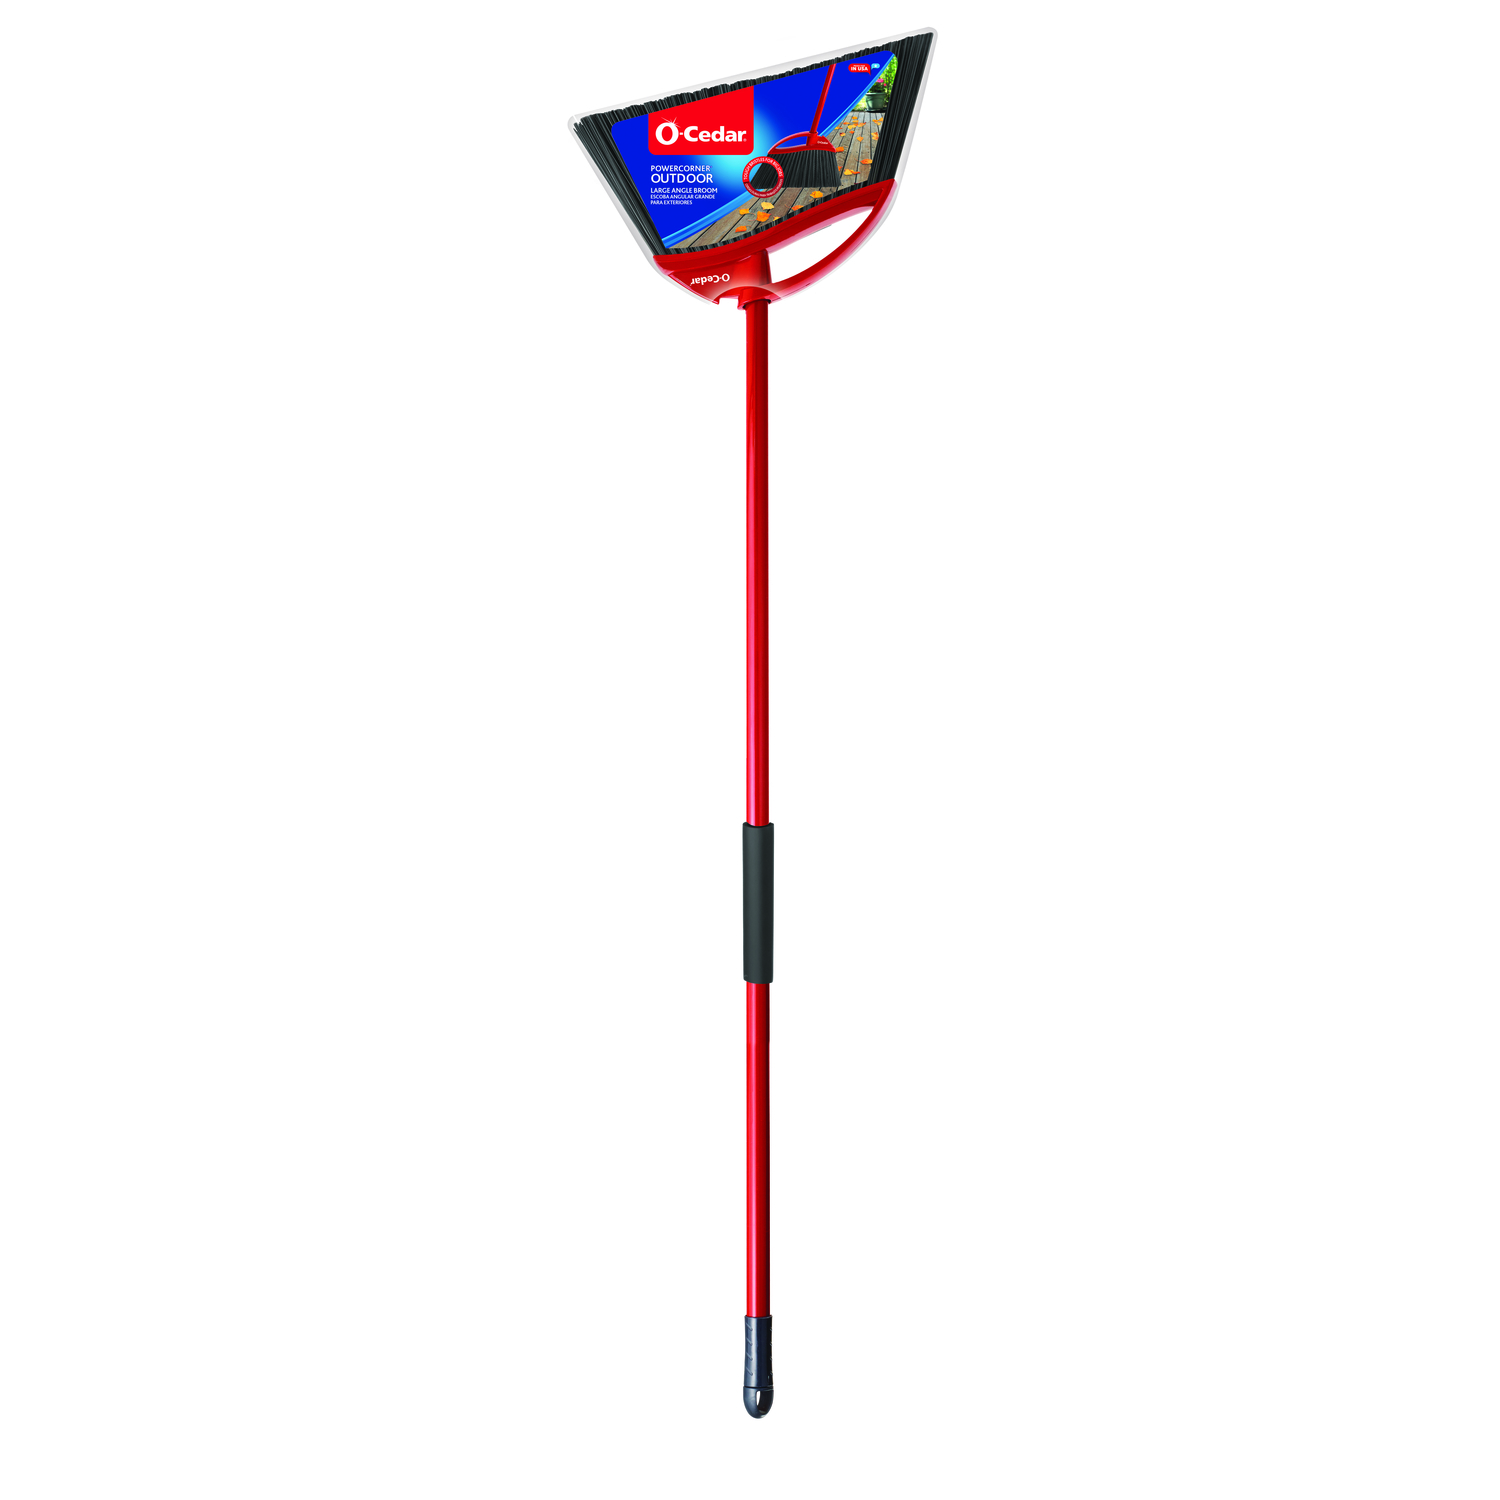 O-Cedar  Outdoor Power Corner  12 in. W Broom